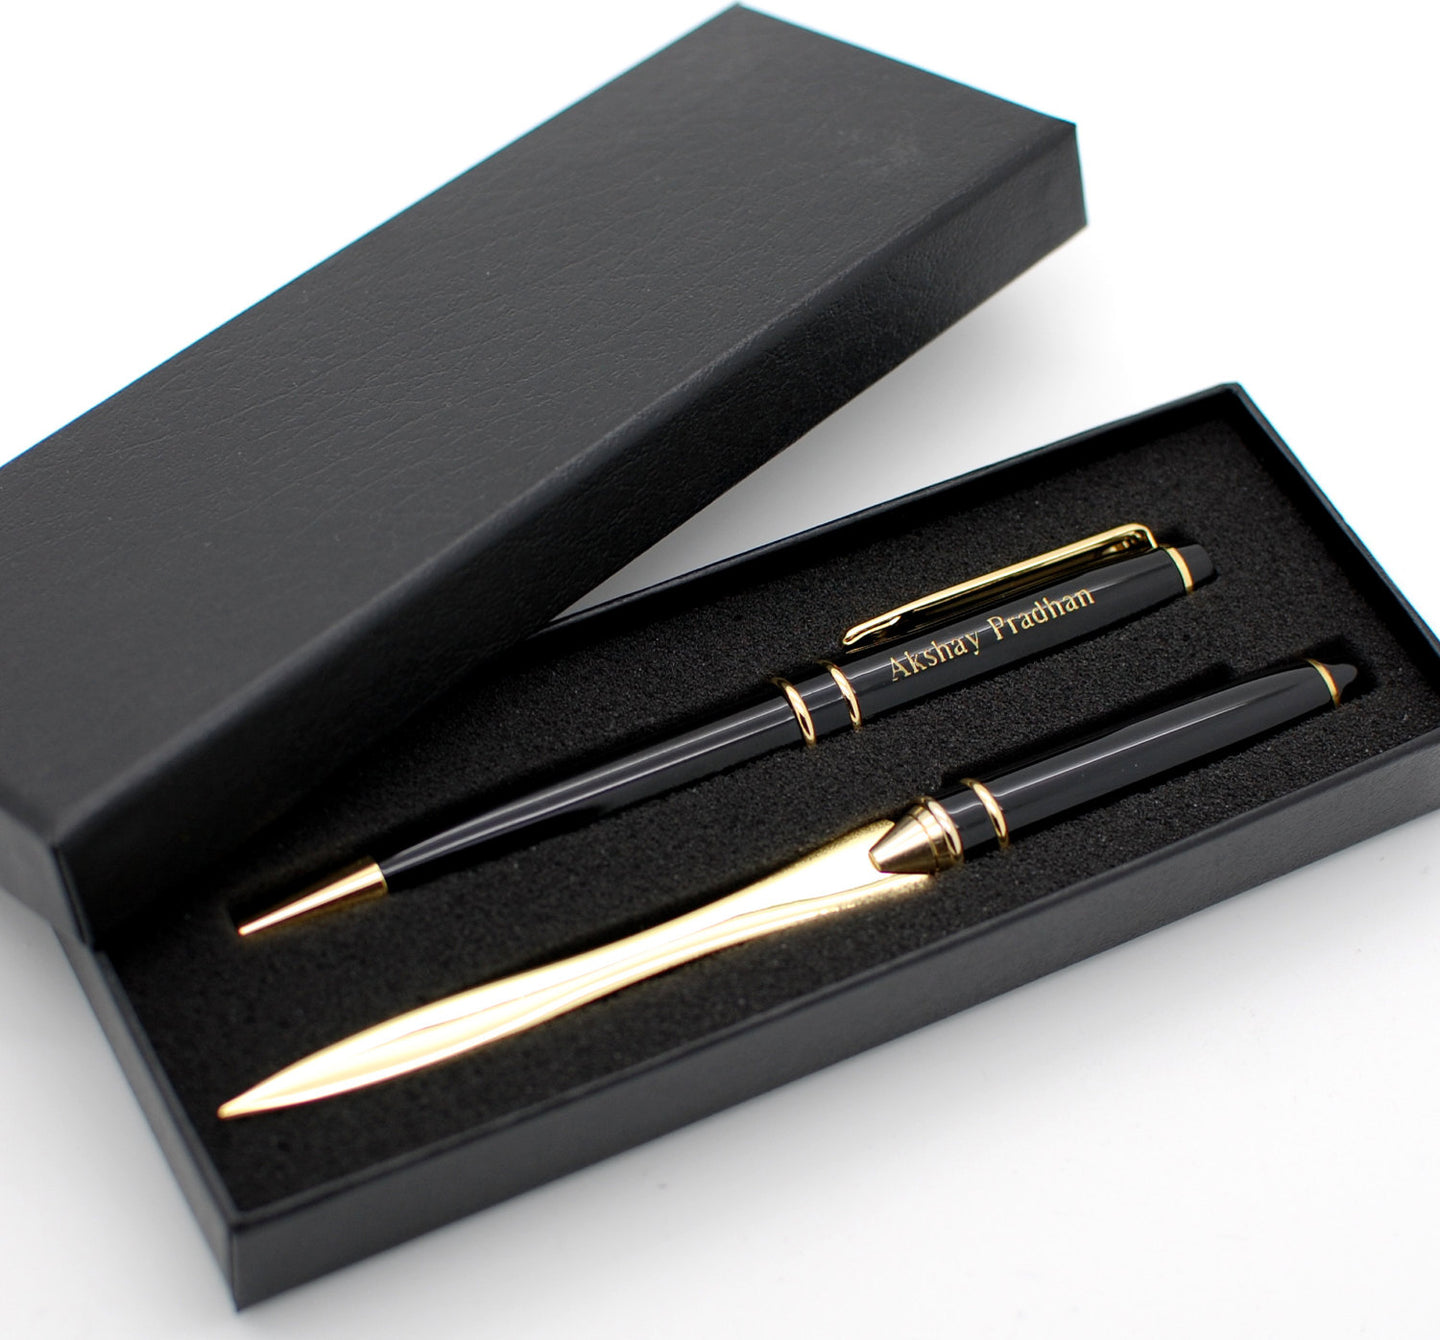 Personalized Black Pen Set with letter opener - Engraved with Name